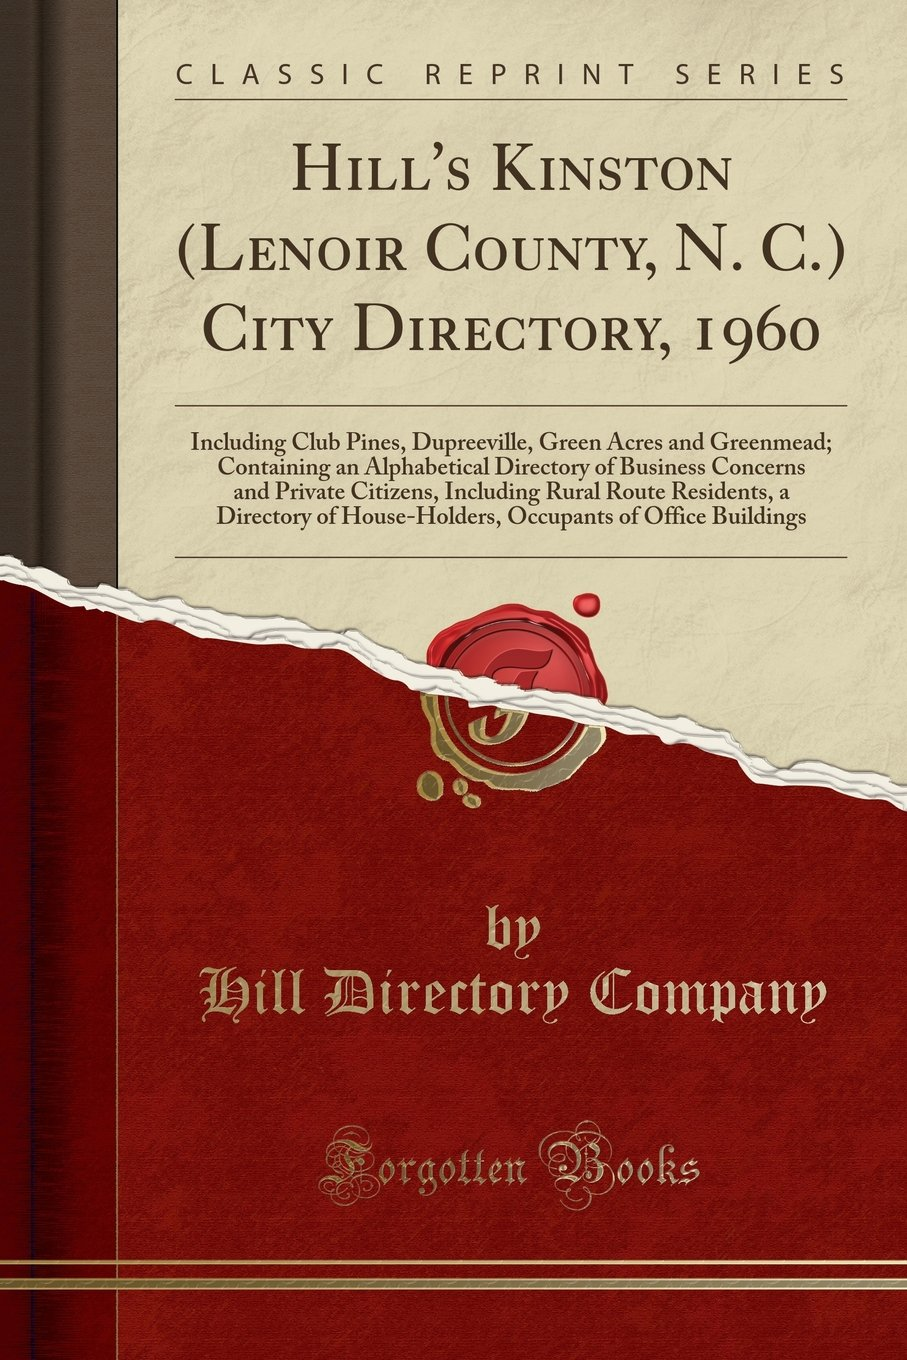 Hill's Kinston (Lenoir County, N. C.) City Directory, 1960: Including Club Pines, Dupreeville, Green Acres and Greenmead; Containing an Alphabetical ... Rural Route Residents, a Directory of House pdf epub